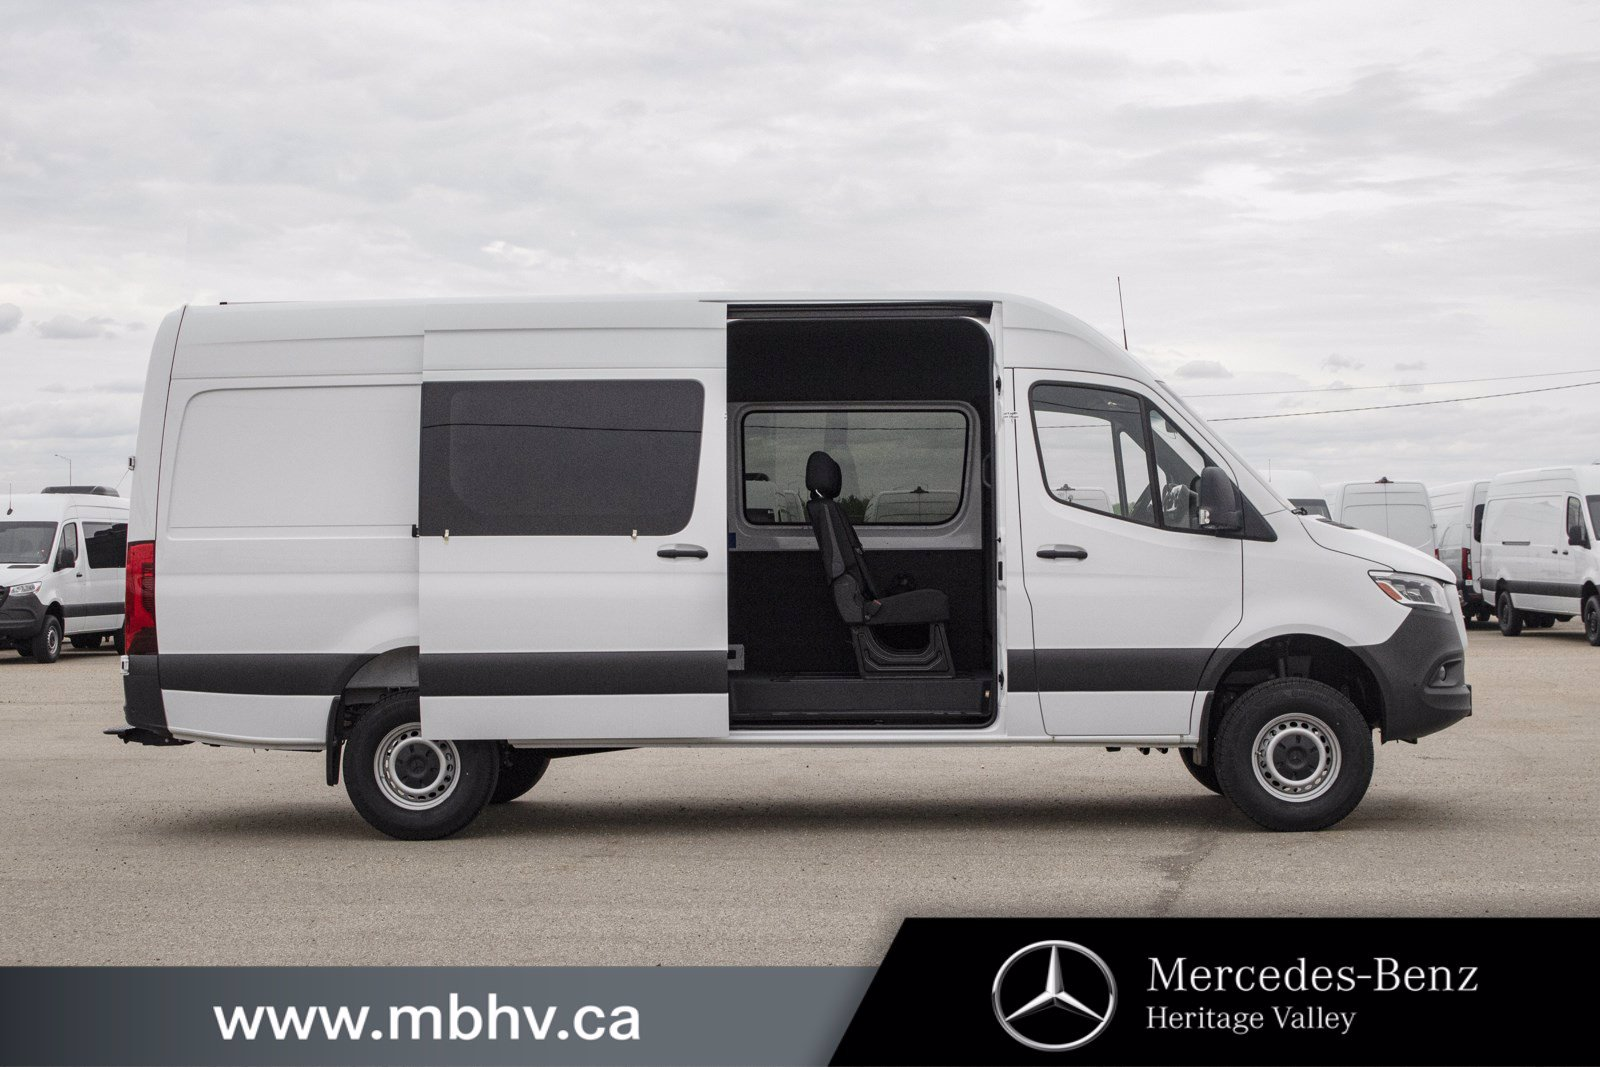 New 2019 Mercedes-Benz Sprinter 4x4 Crew Van 170